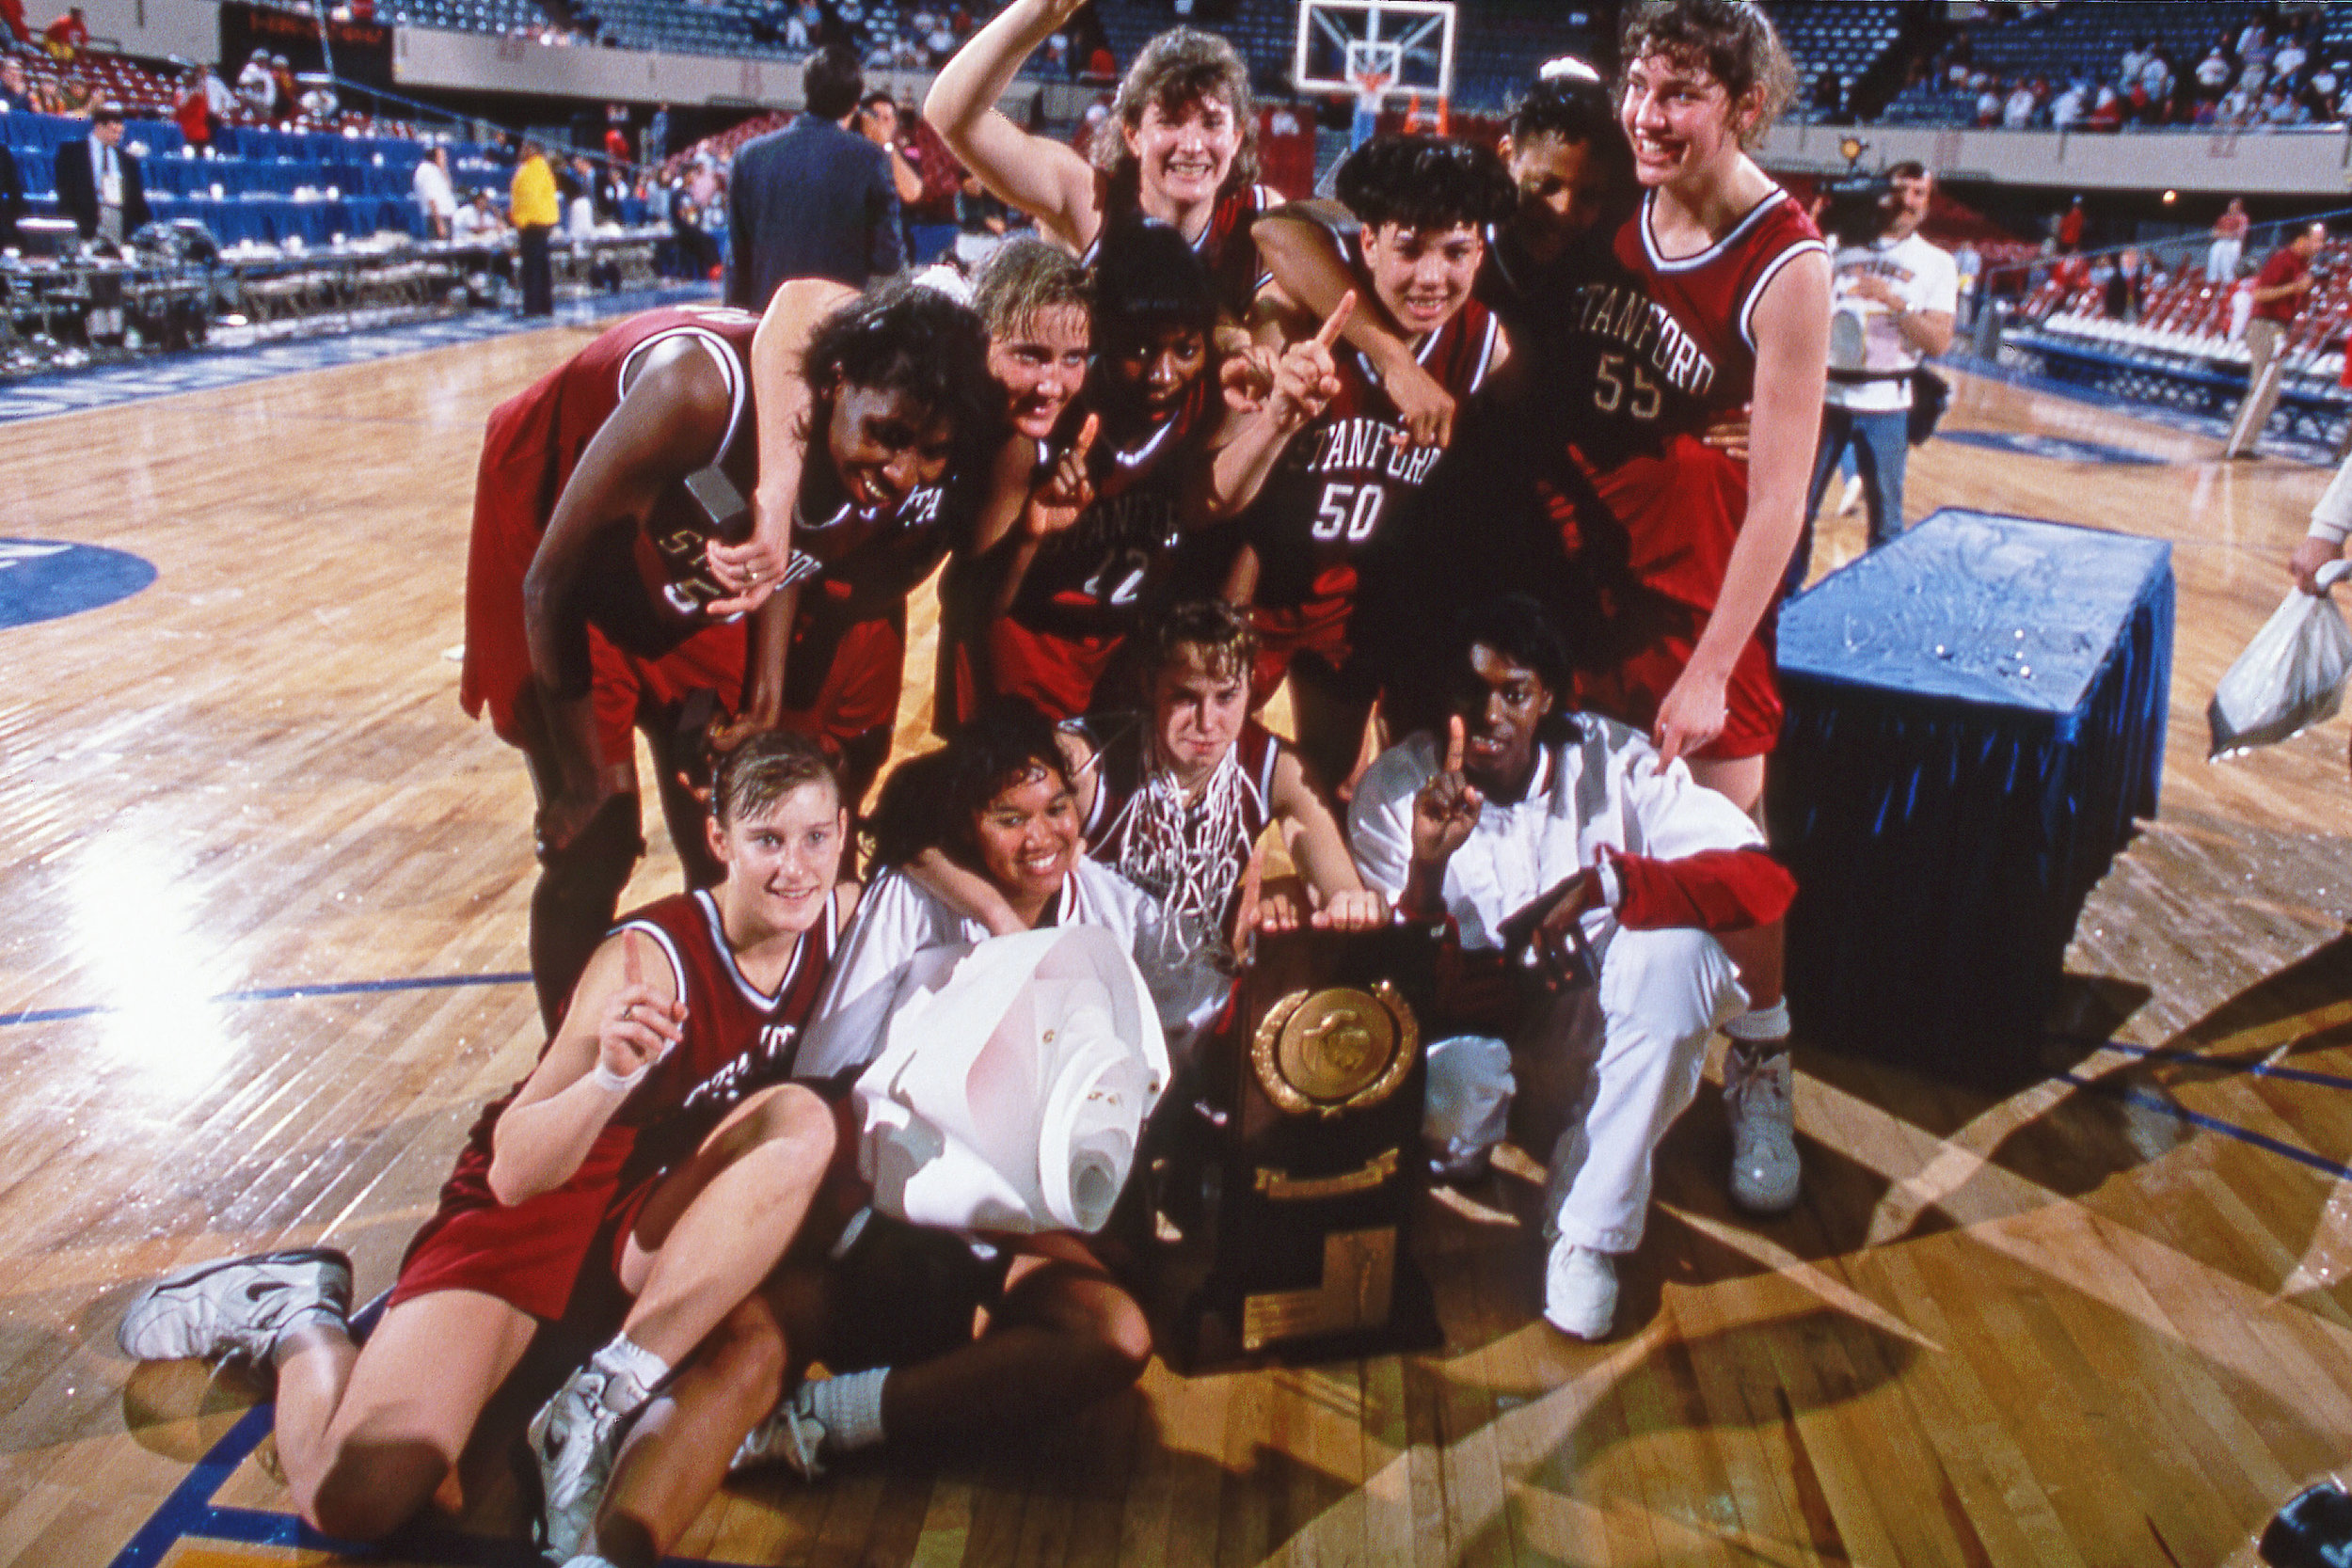 1992 NCAA Division I Women's Basketball Champions: Stanford University